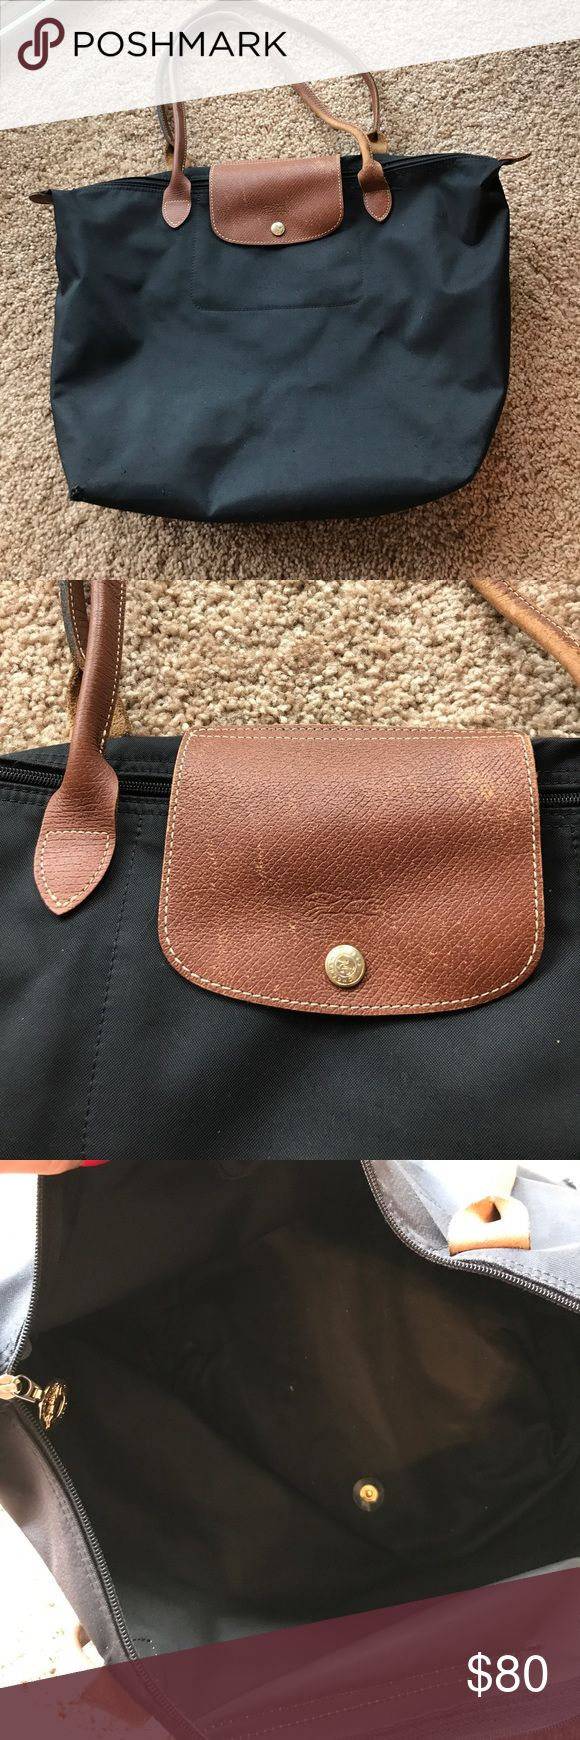 Long Champ Le Pliage Large Purse Gorgeous classic Longchamp purse. This one is large and can hold anything youd need! A couple of tiny holes in the bottom corners and the snap on the back is bent. Other than that, the purse is perfectly functional! Make an offer! Longchamp Bags Totes